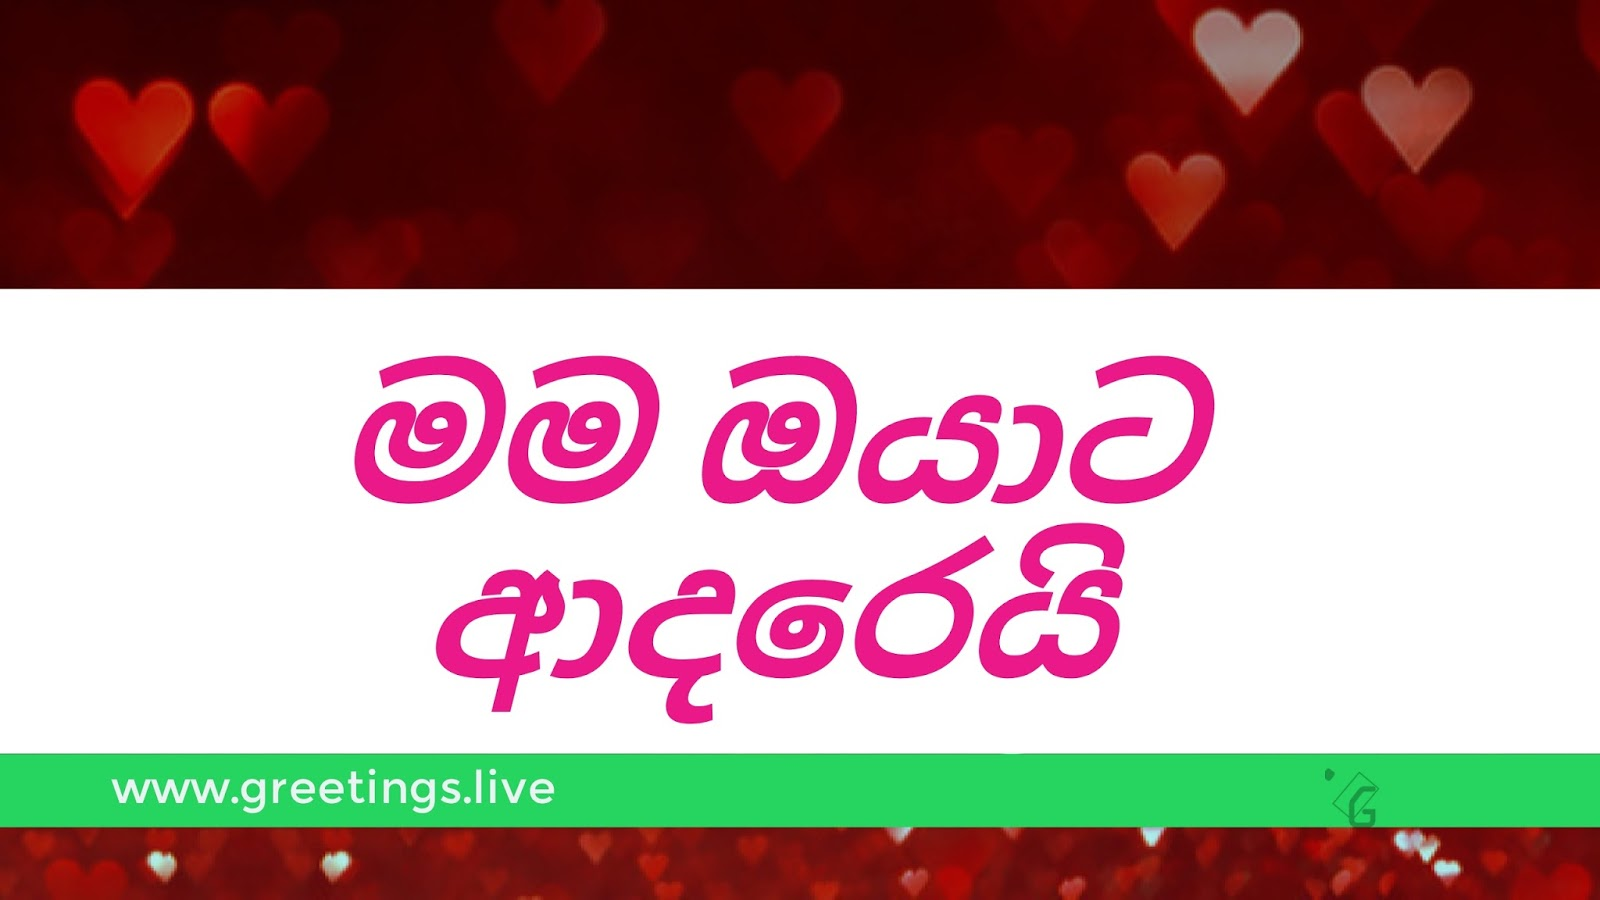 Greetingsve hd images love smile birthday wishes free download sinhalese mama oya dareyi kristyandbryce Images